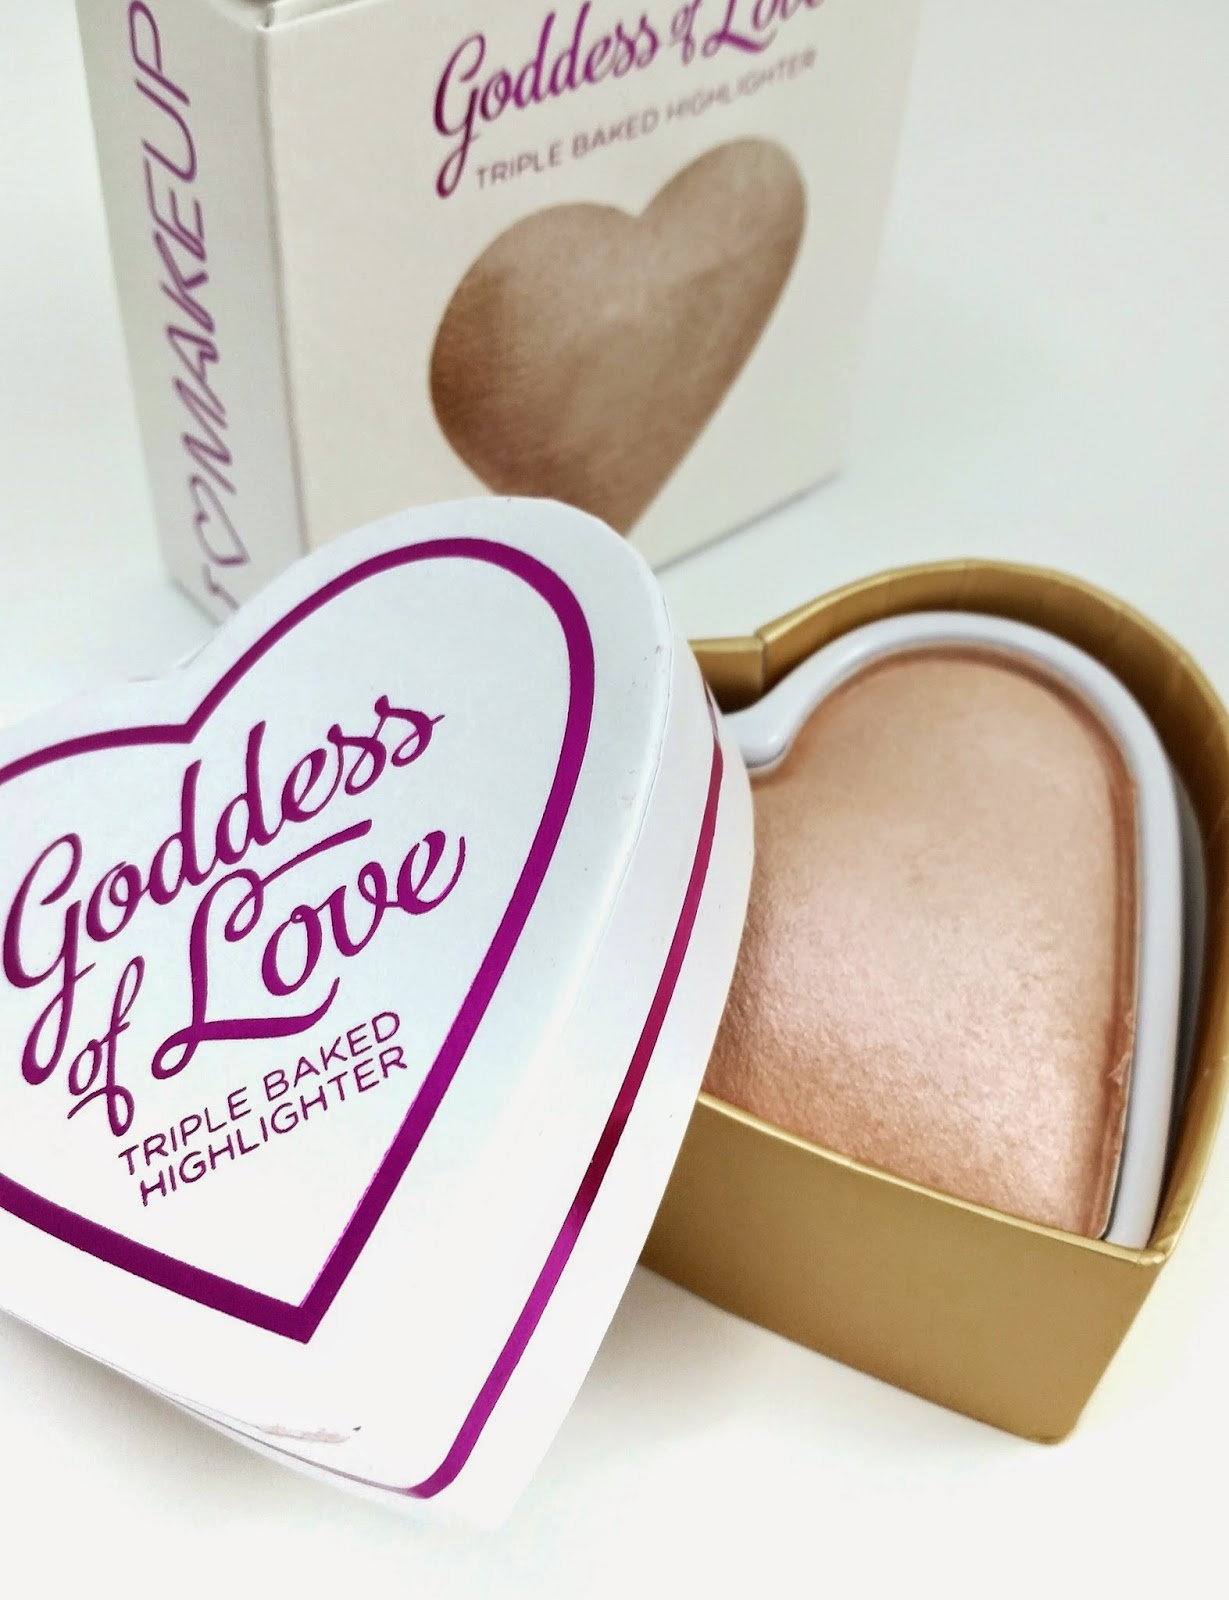 Makeup Revolution Goddess of Love Review Swatches